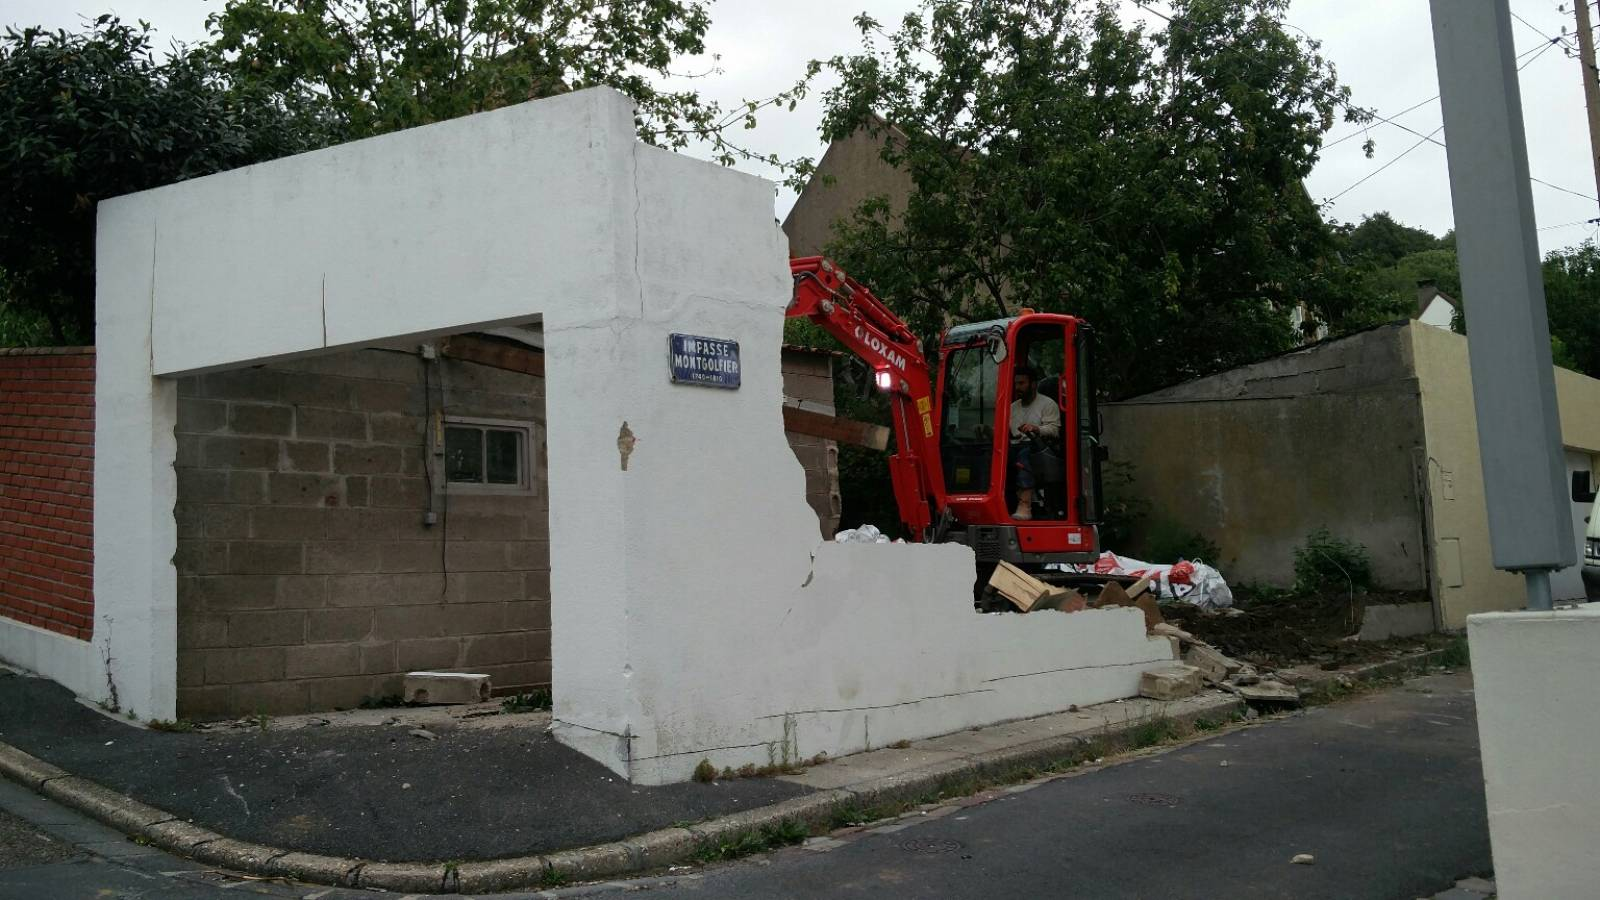 d molition et construction d 39 un garage cl en main au